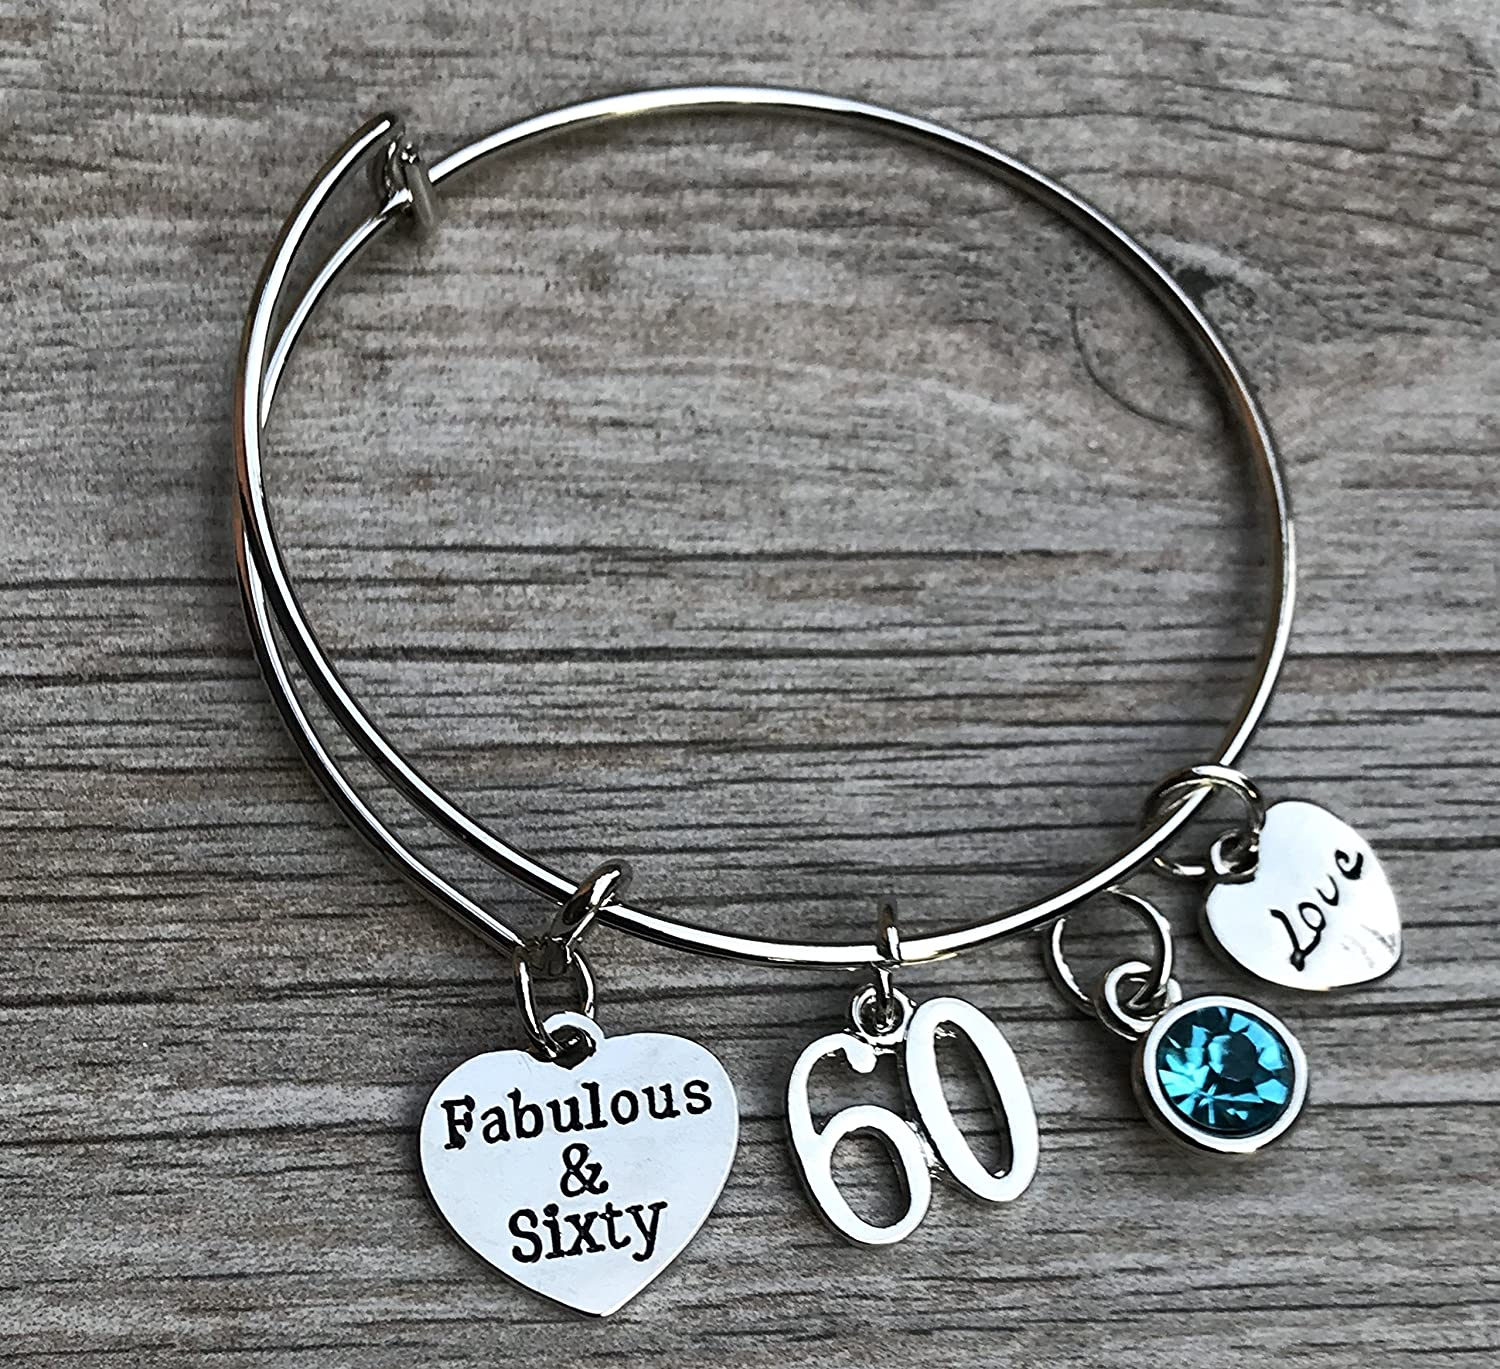 60th Birthday Bangle Bracelet with Birthstone Charm, Fabulous and Sixty Birthday Gifts for Women, Vintage 1958 Aged to Perfection Bracelet. 60th Bday Gifts for Her